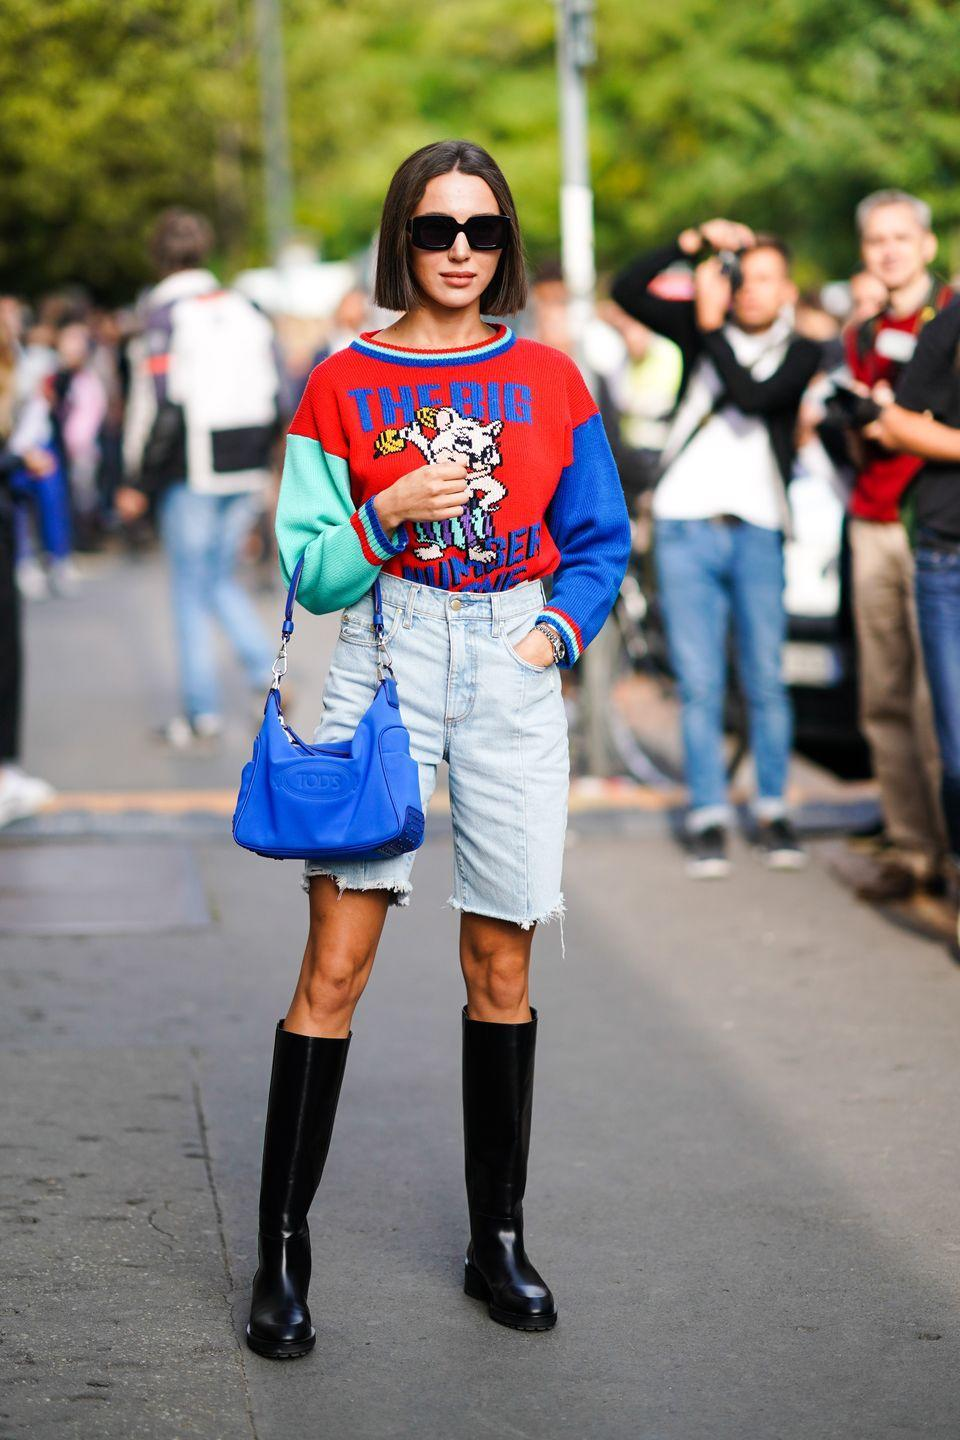 <p>A simple way to take your denim from winter to spring is to swap an old pair of jeans for shorts that sit just above the knee (if you're feeling very brave, you could dabble in some home DIY and cut them yourself). Then substitute in crop tops and sandals for trainers and jackets, weather permitting.</p>